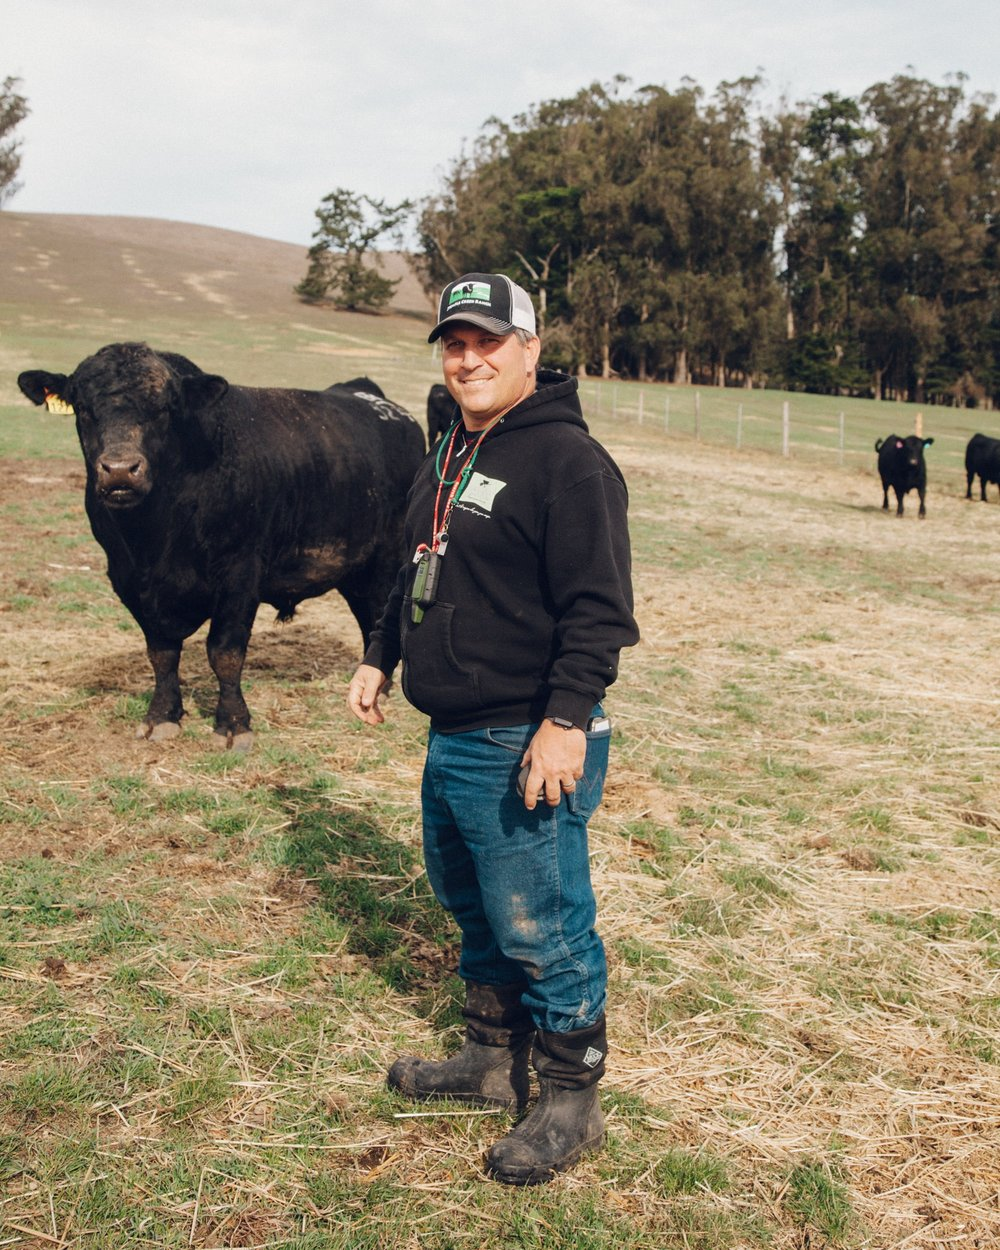 Loren with one of the bulls.